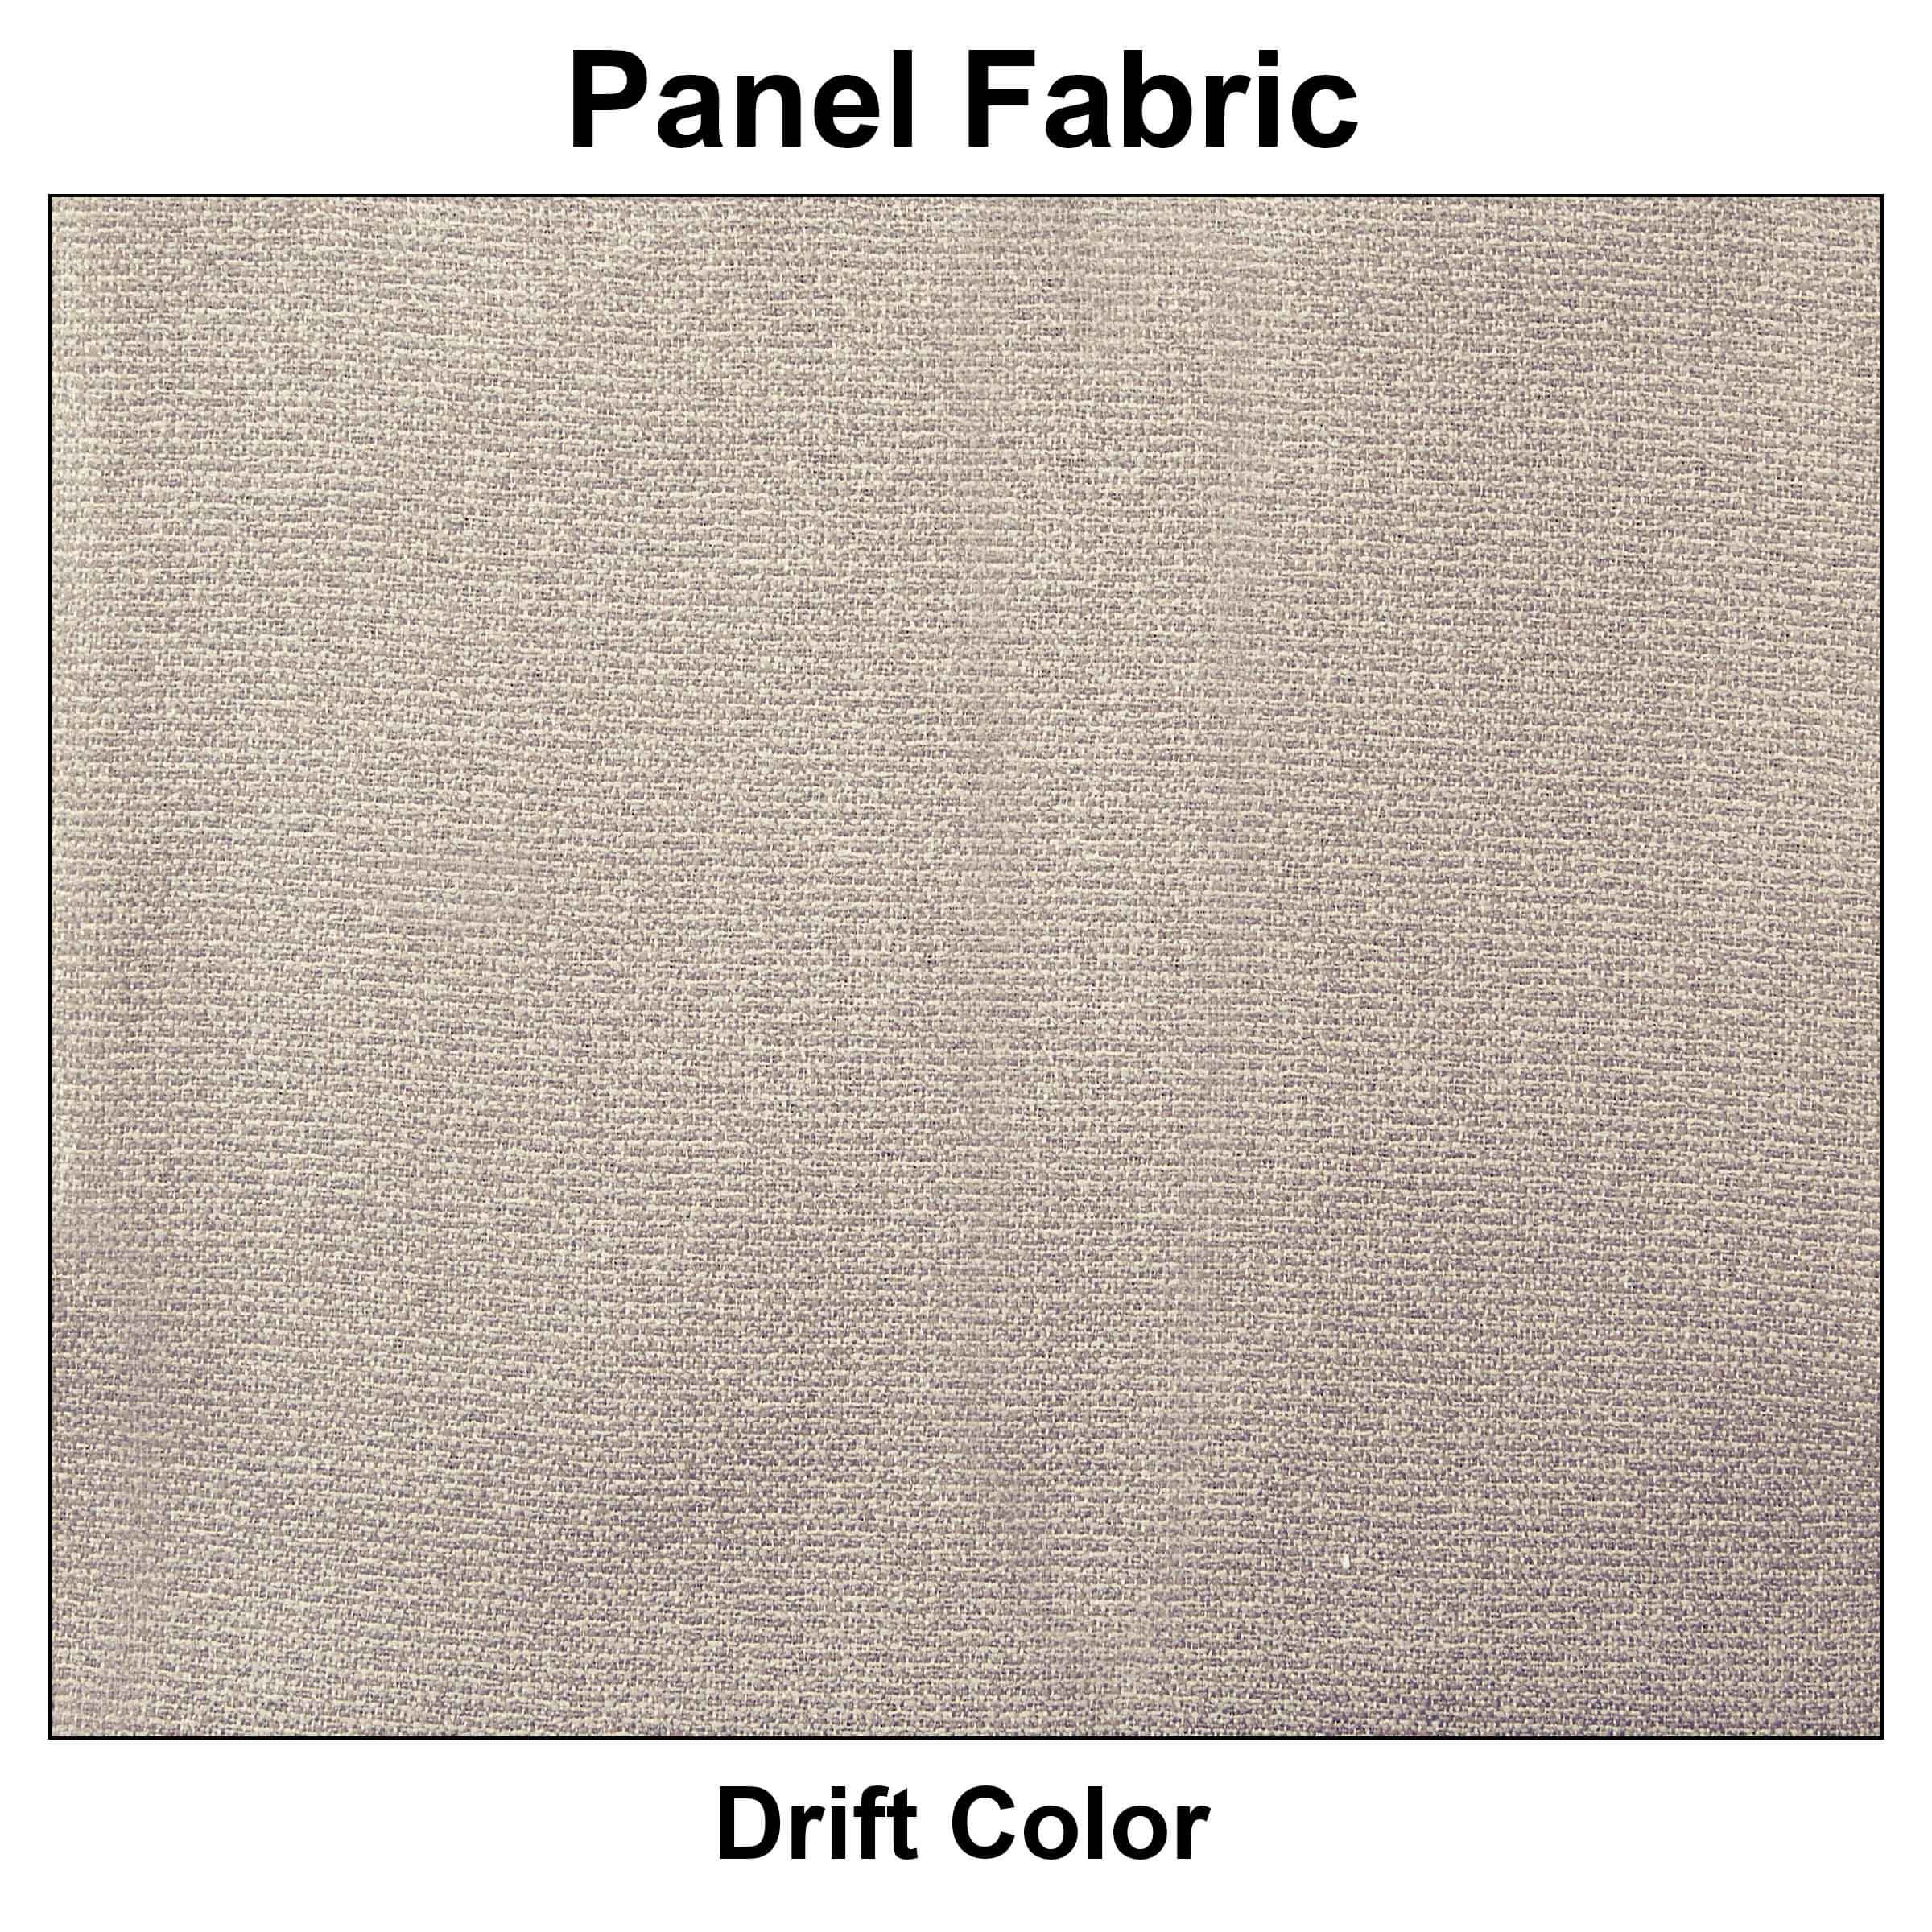 Small office cubicles single fabric color